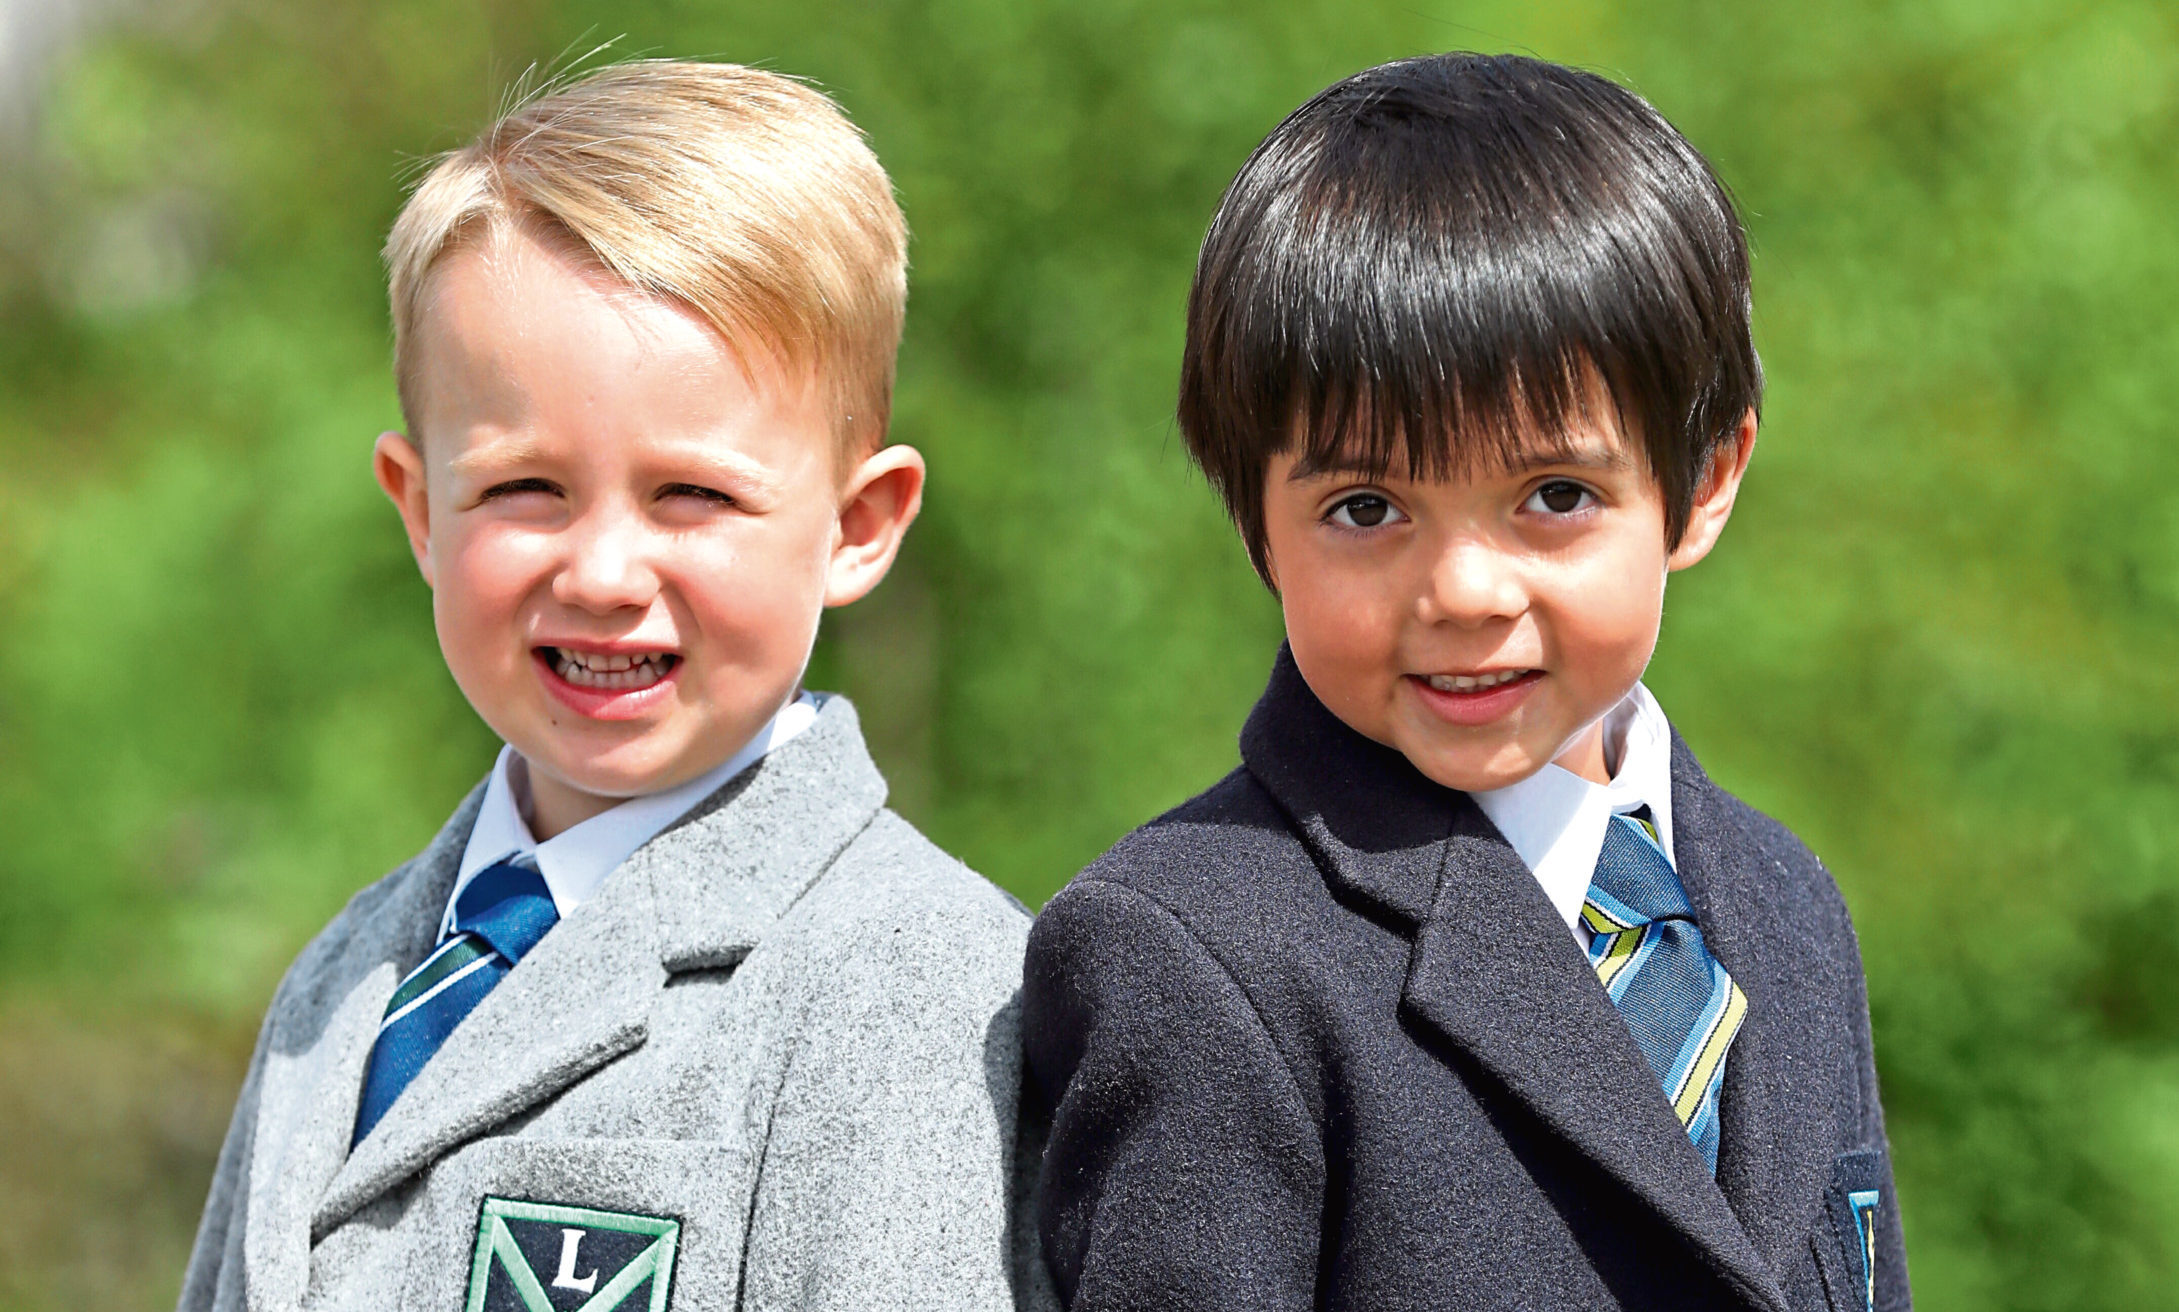 Connell is off to Longhaugh Primary and Luca is set for St Joseph's Primary